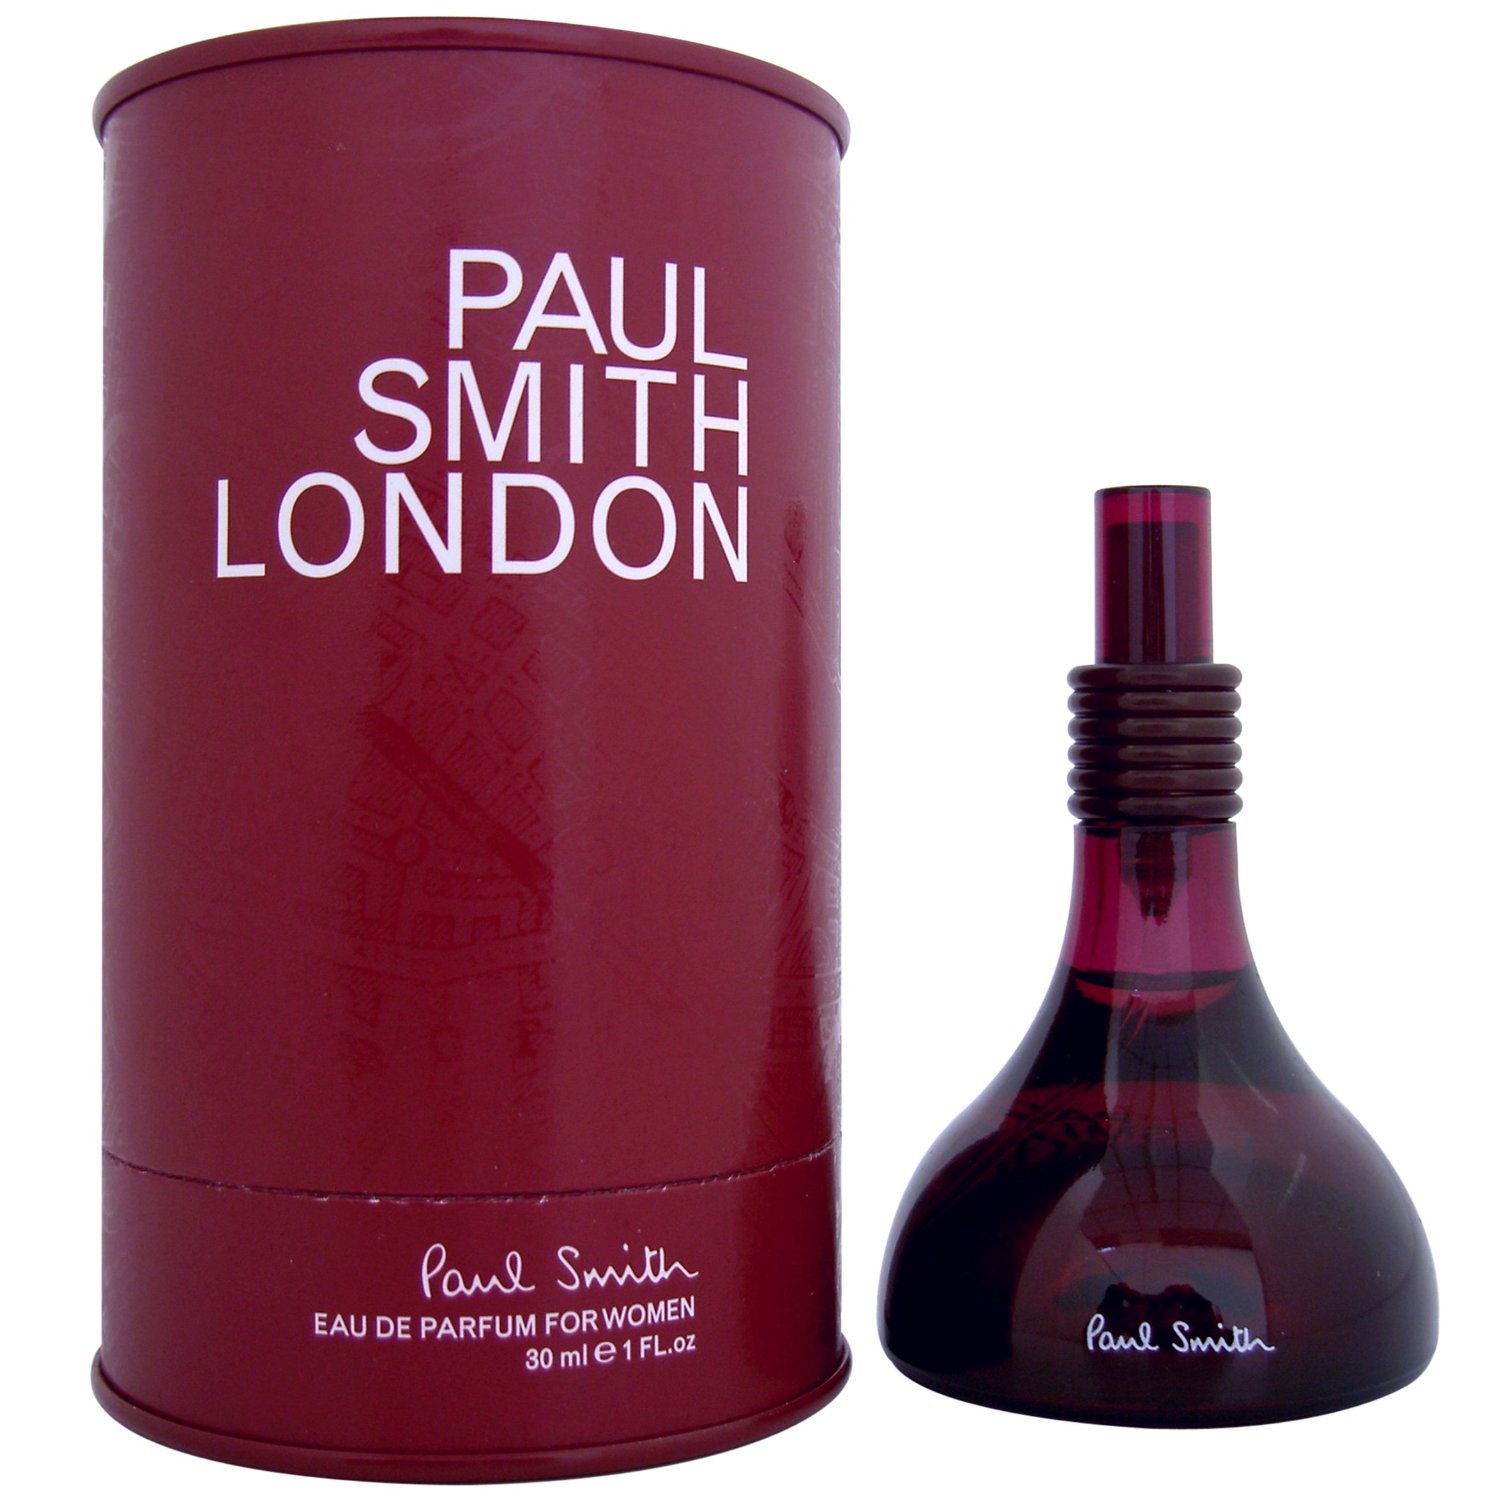 6bd1dc96702a Get Quotations · Paul Smith London by Paul Smith for Women - 1 oz EDP Spray